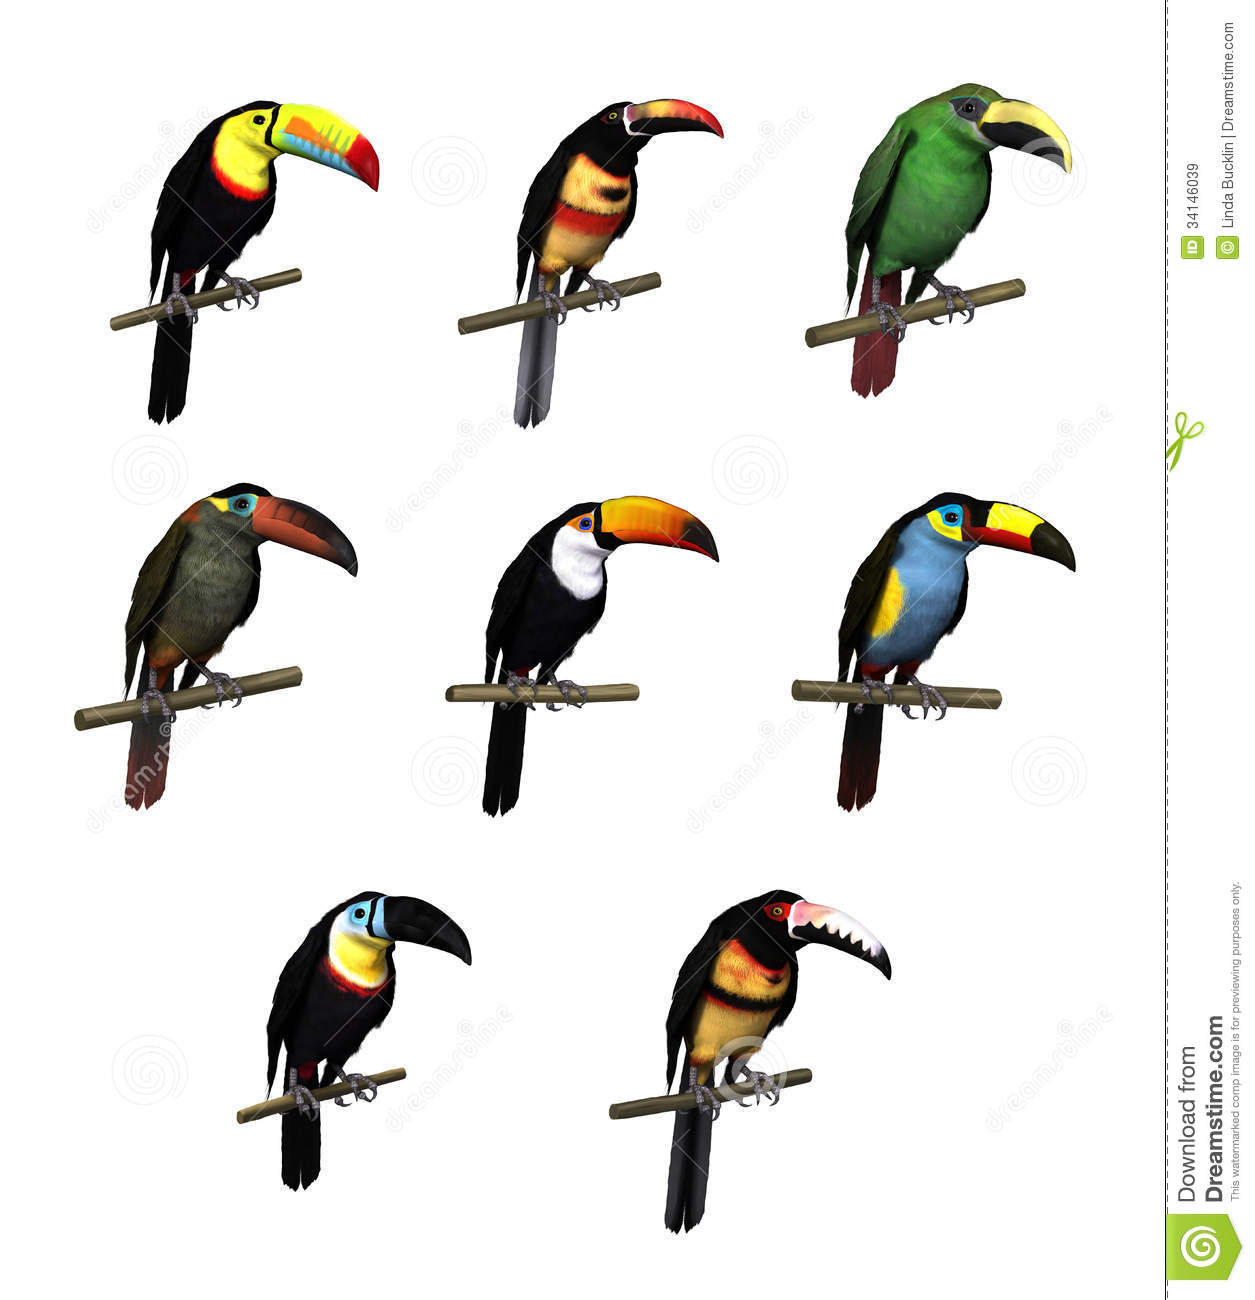 toucan varieties royalty free stock images image 34146039 toucan clipart for preschoolers toucan clipart panda